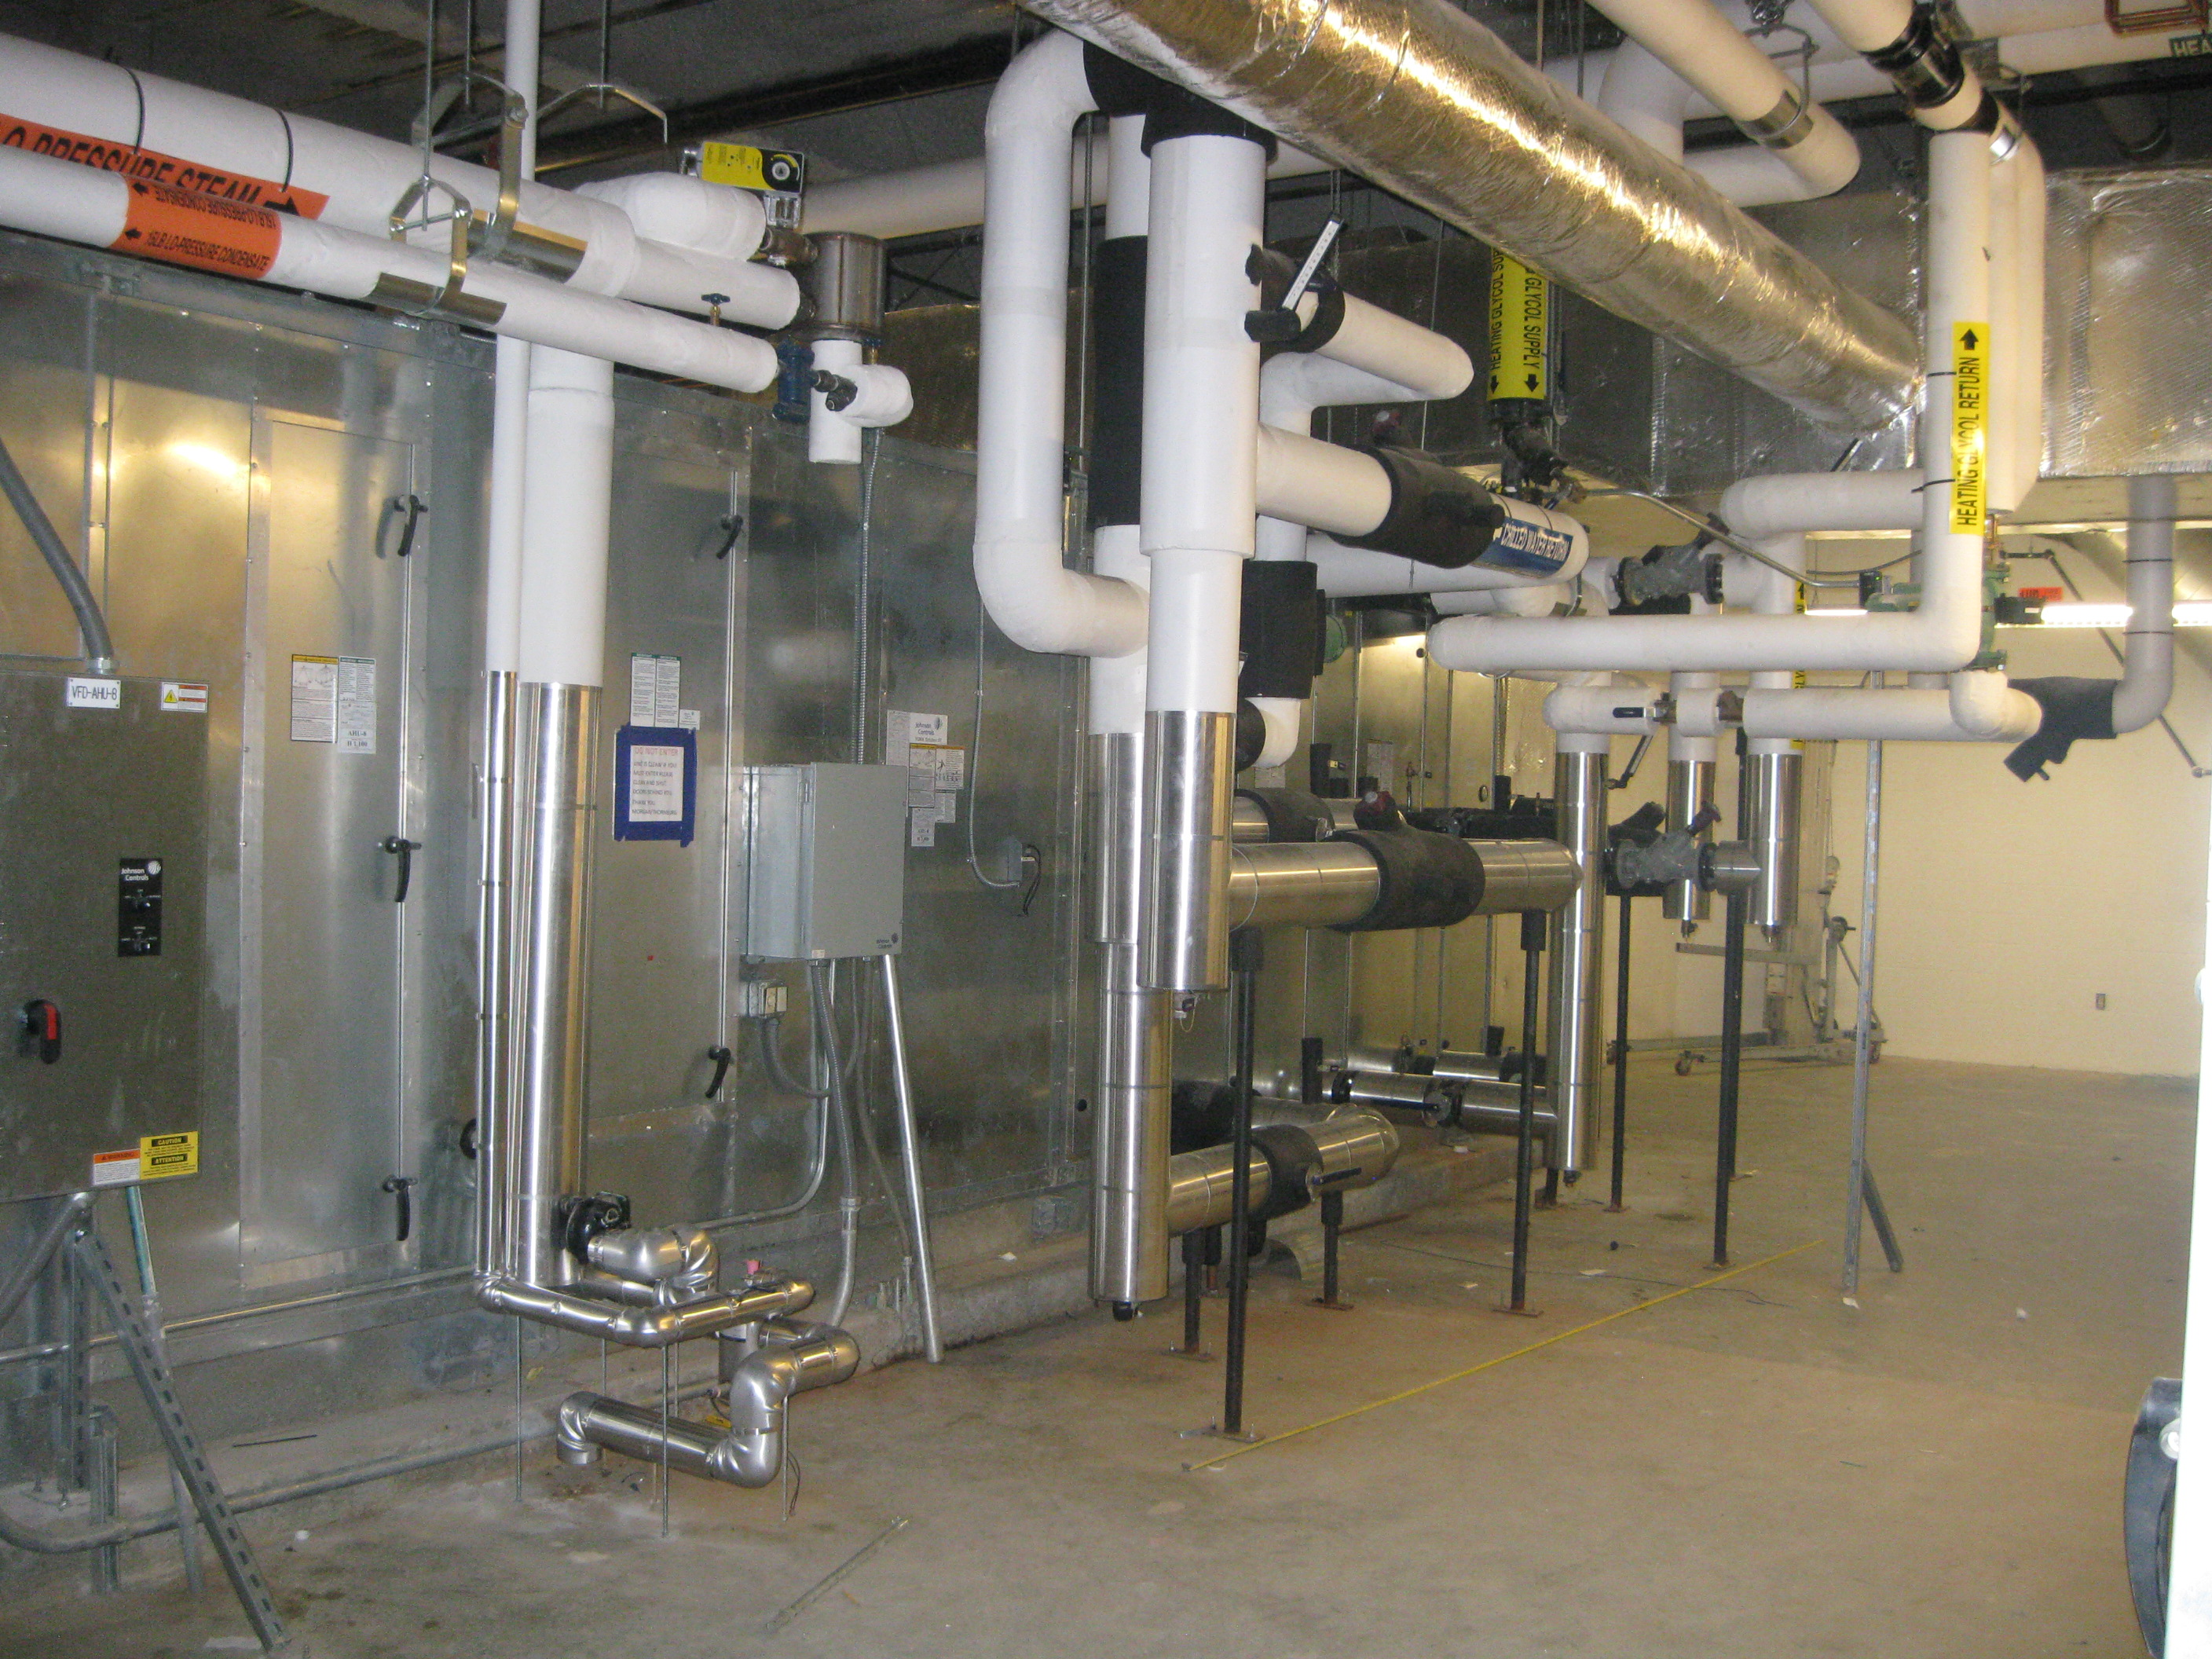 Air Handler at University of Tennessee Translational Sciences Research